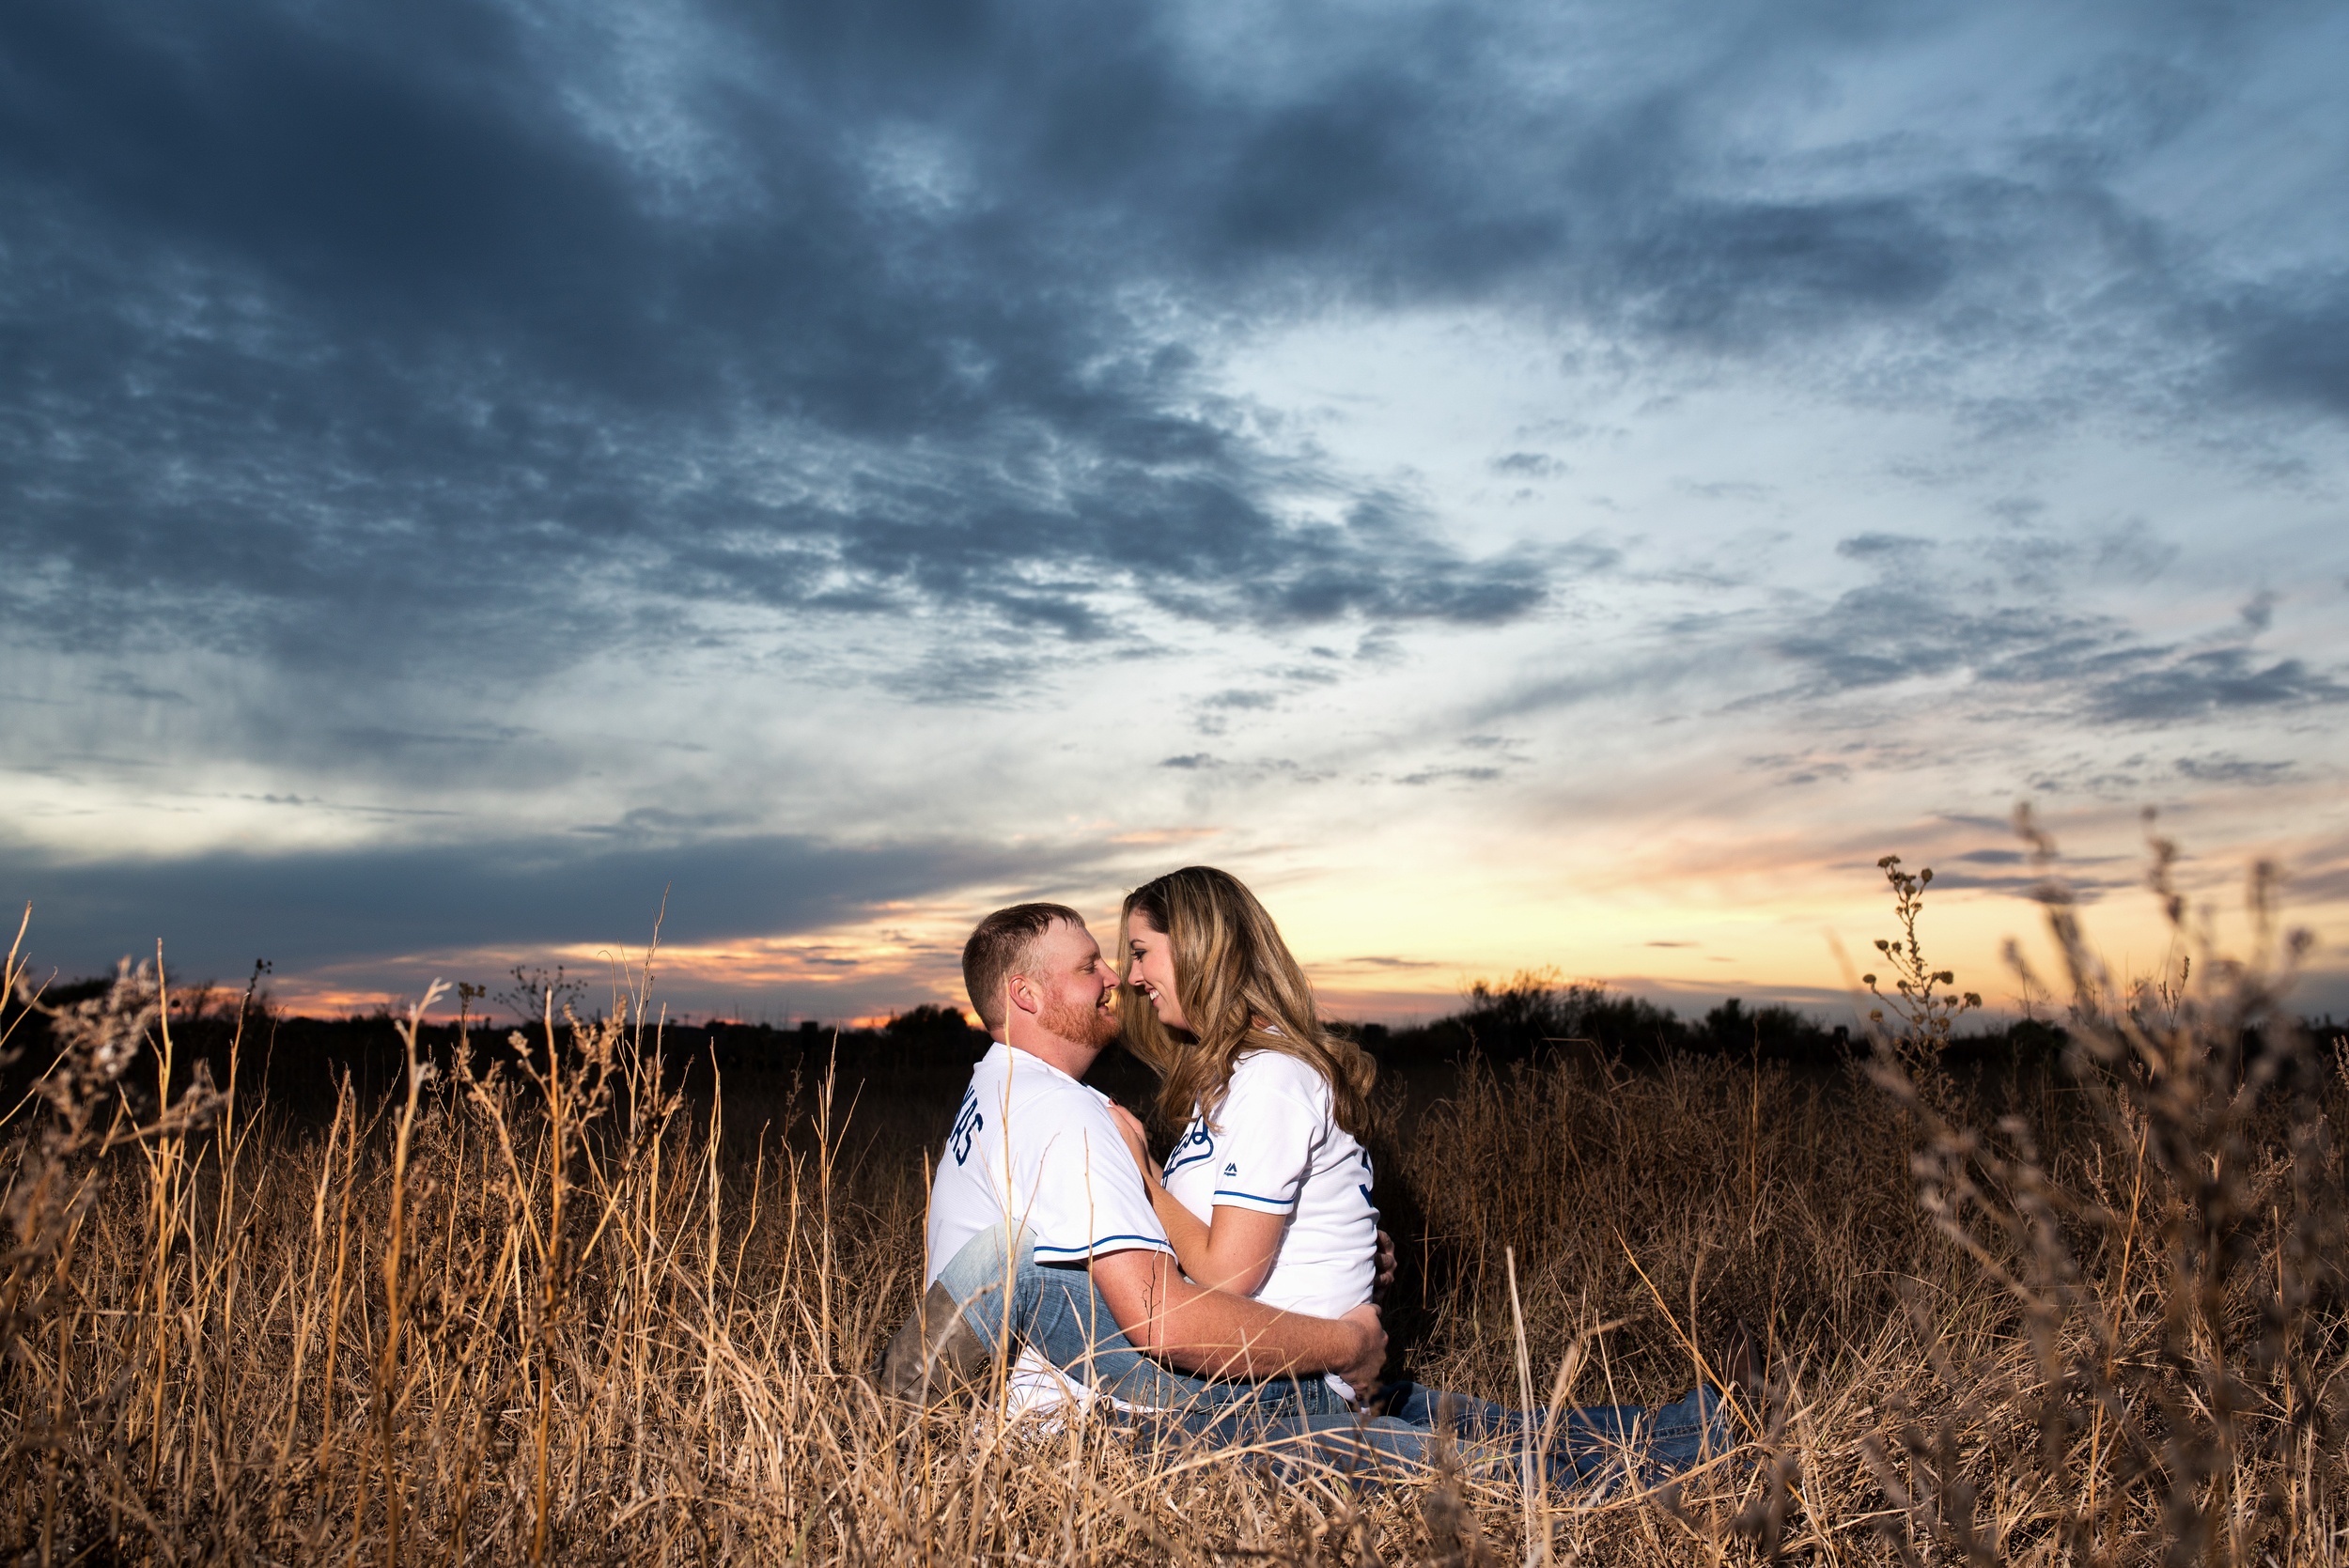 engagement-photography-gardencity-ks-30.jpg